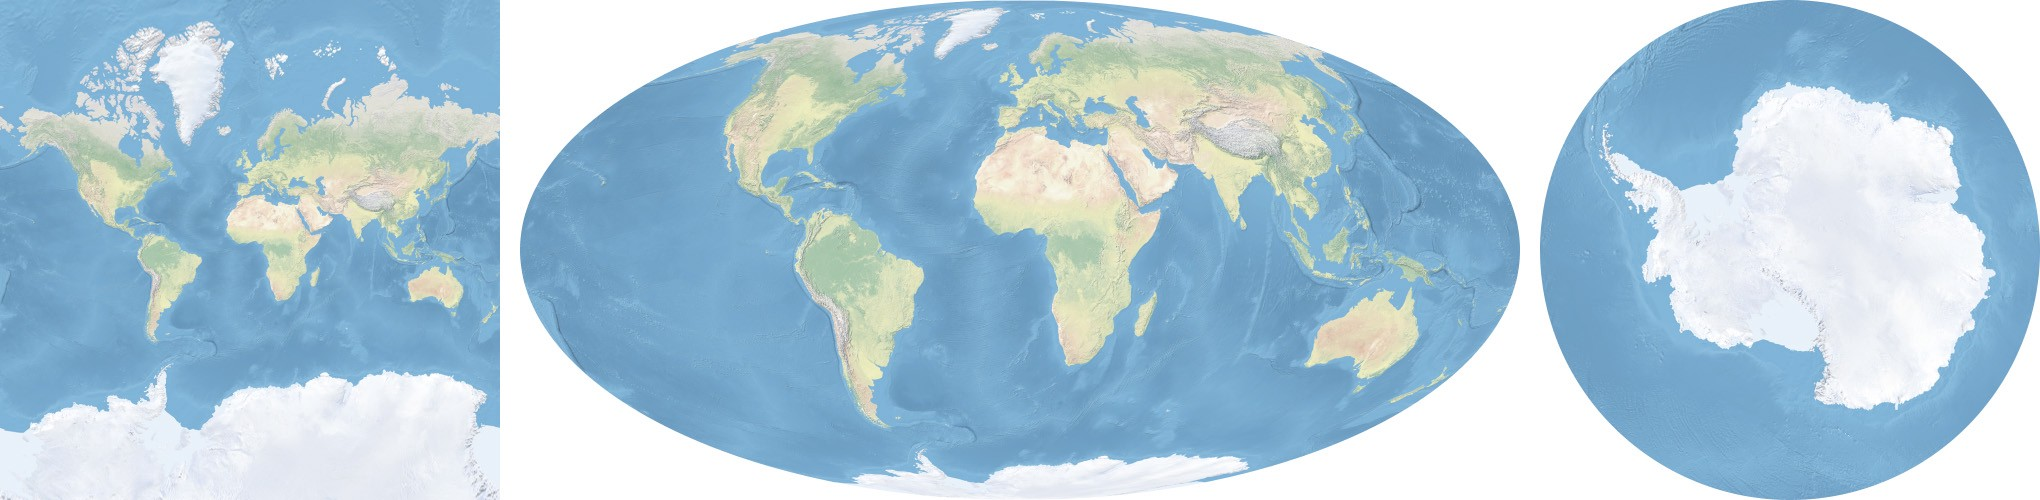 A Gentle Introduction to GDAL, Part 2: Map Projections